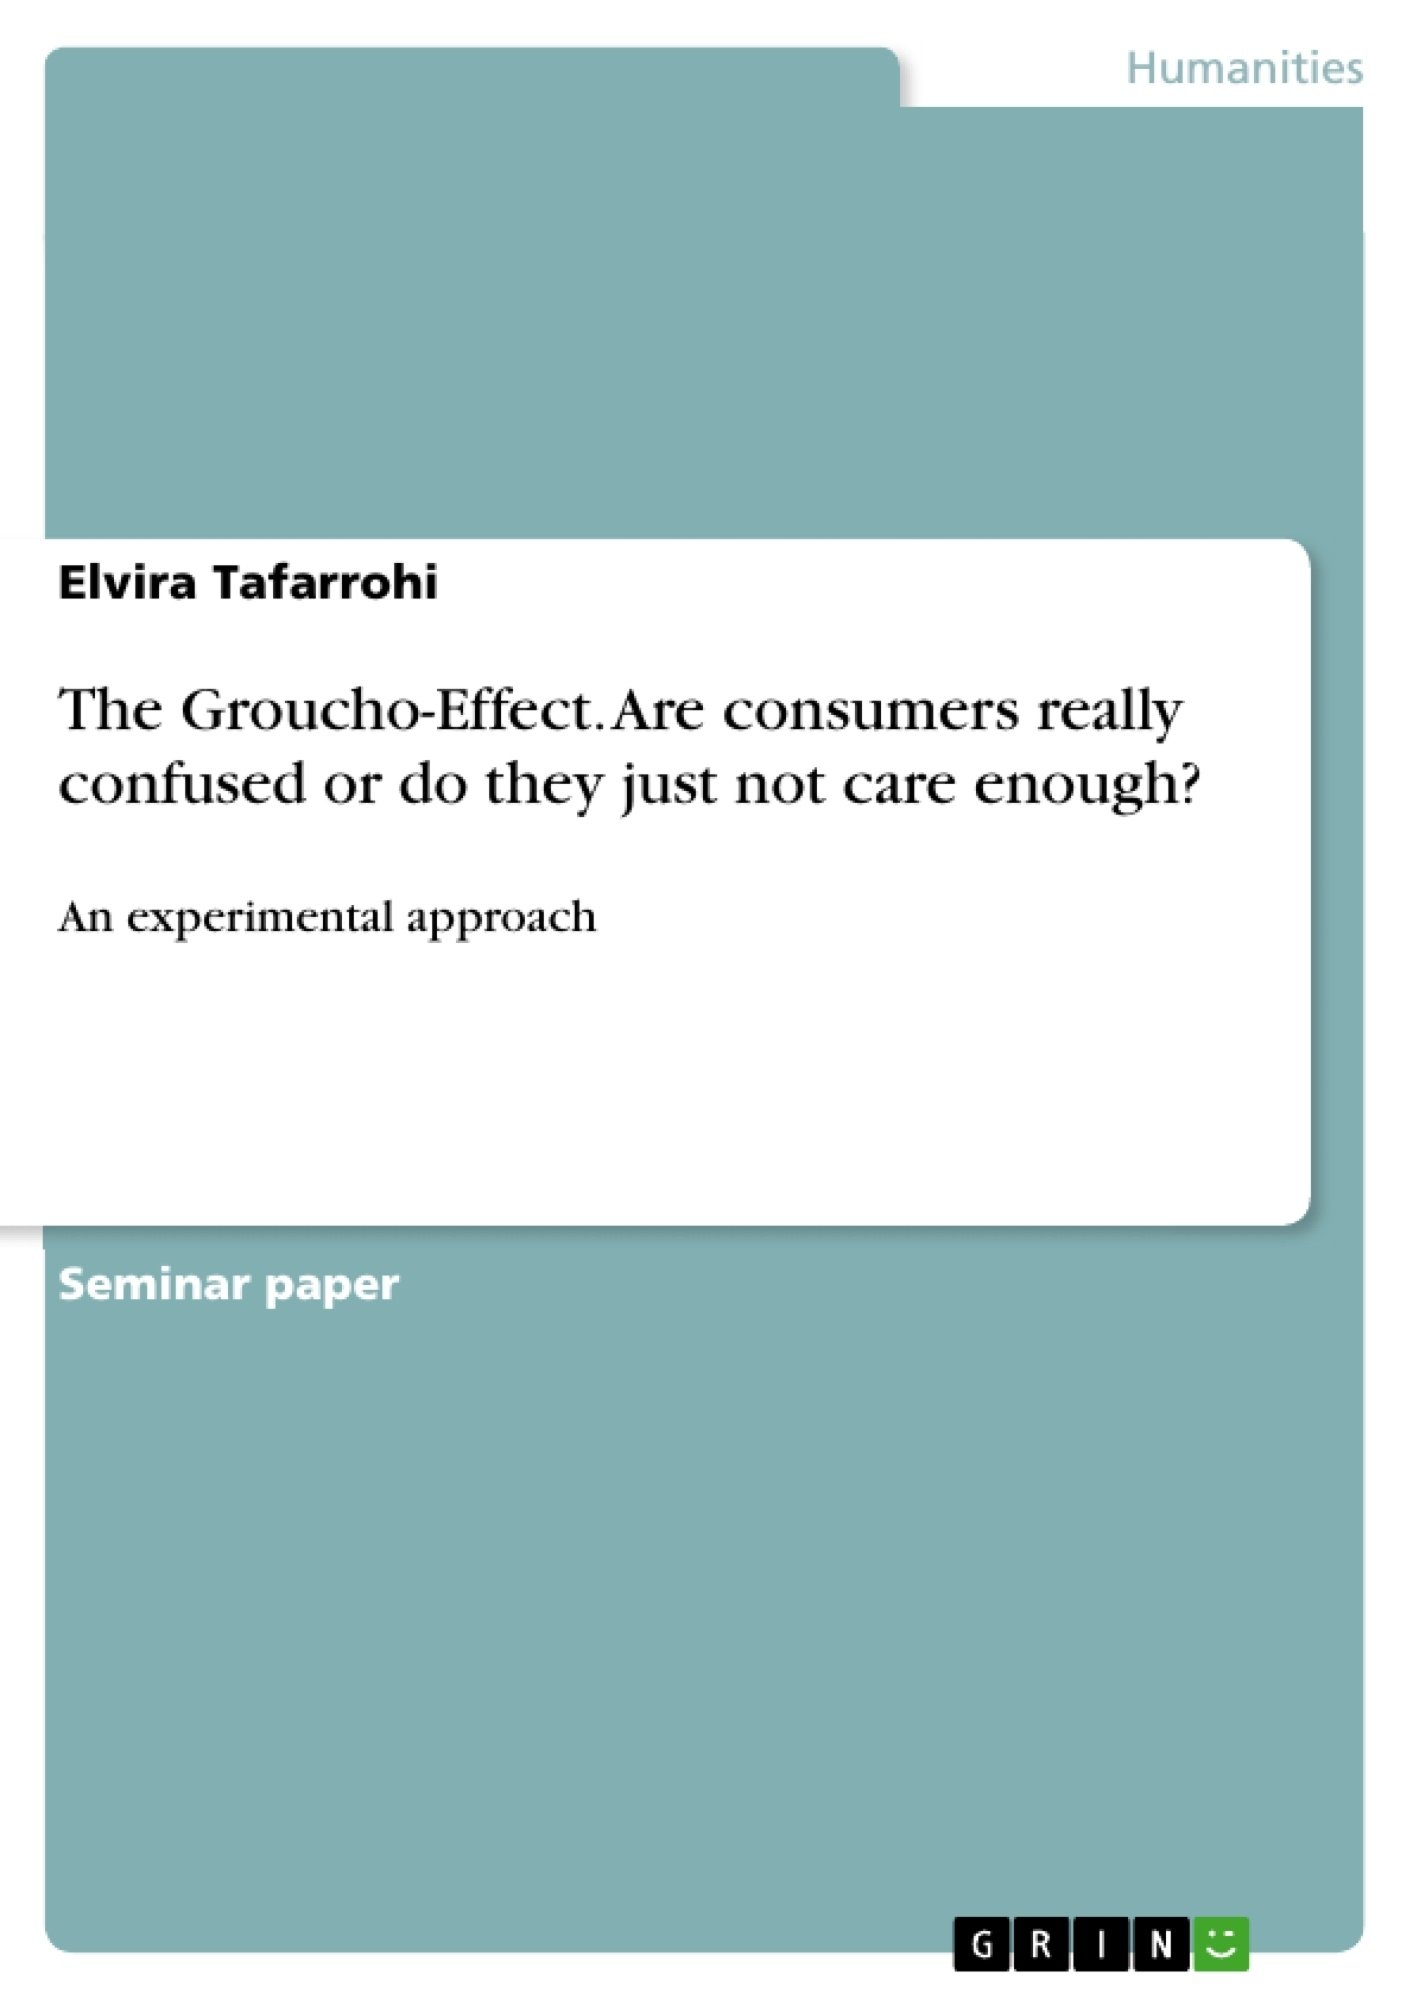 Title: The Groucho-Effect. Are consumers really confused or do they just not care enough?